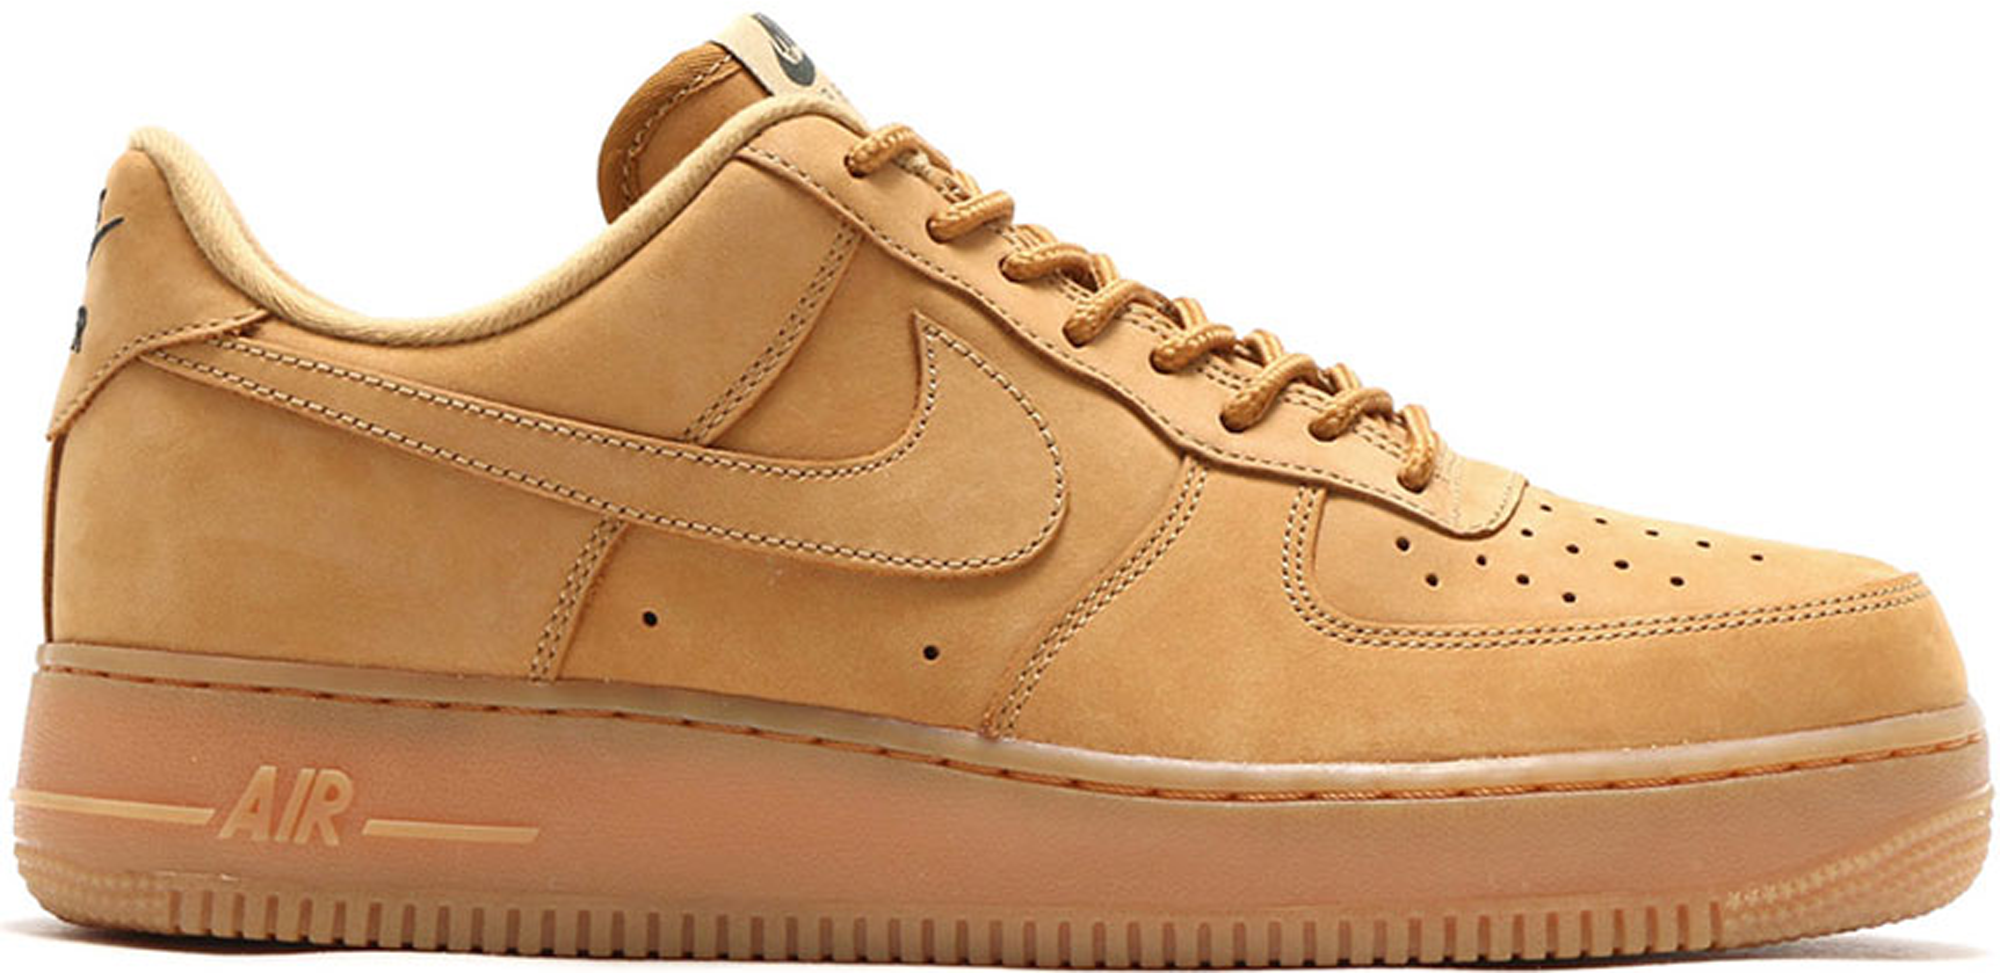 Nike Air Force 1 Faible - Chaussures Marron / Beige